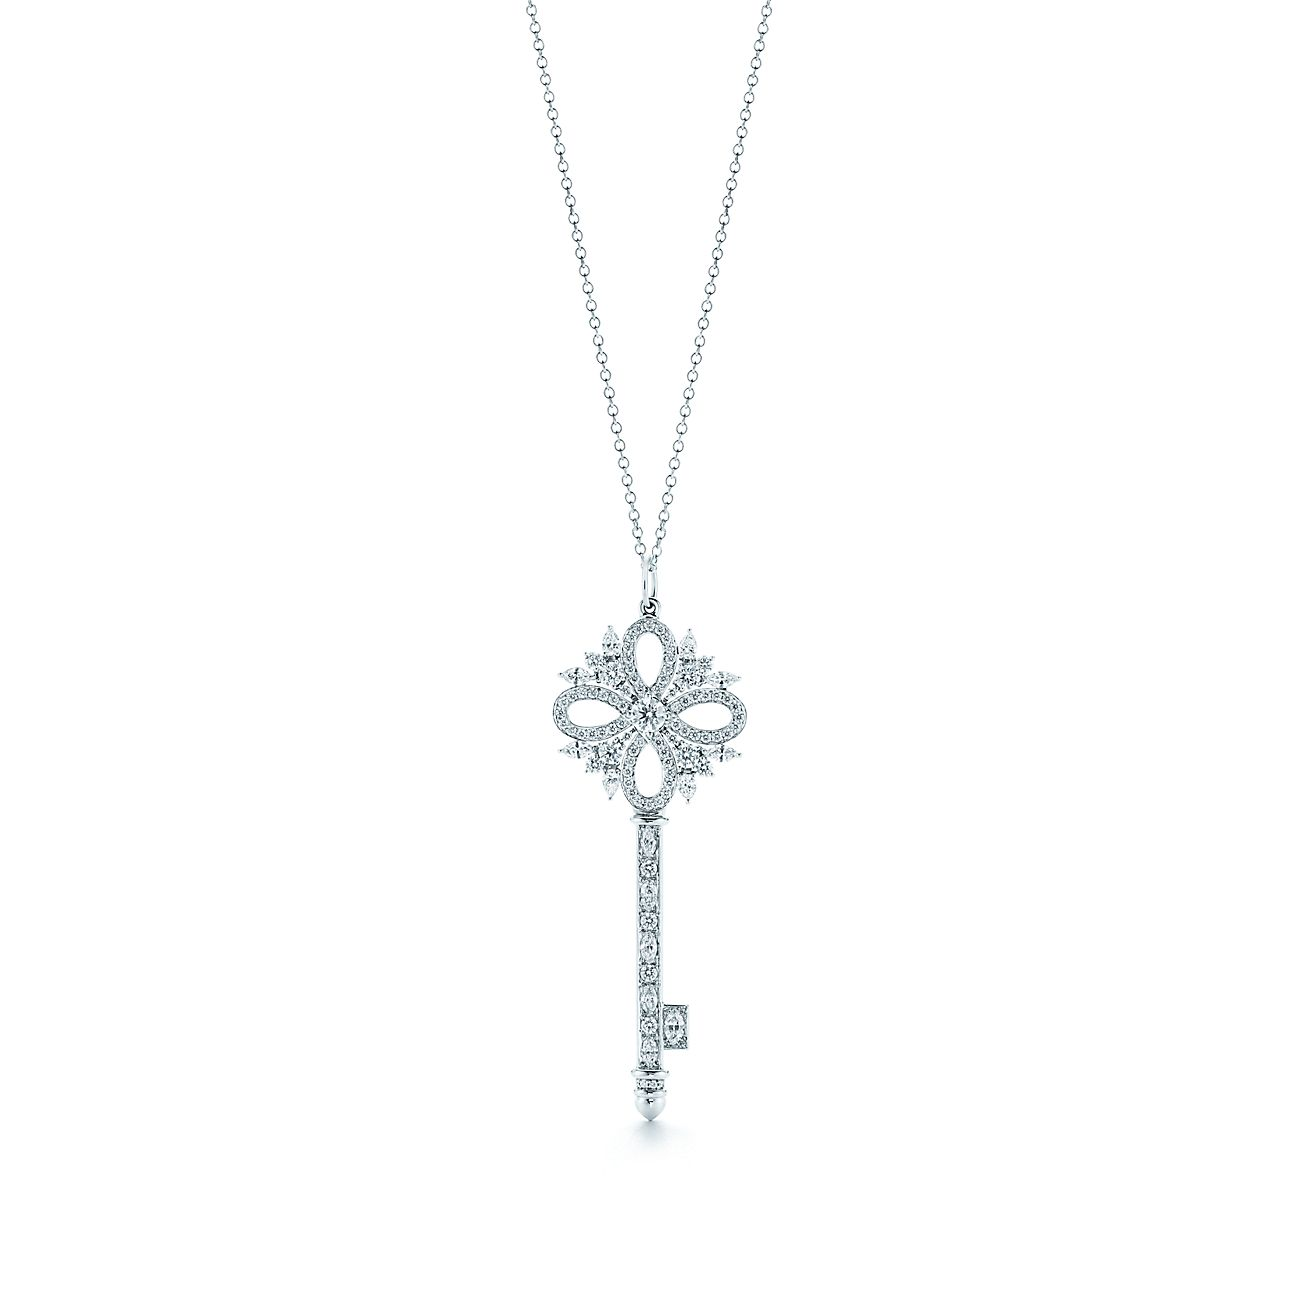 Tiffany keys tiffany victoria key pendant in platinum with tiffany keystiffany victoriabrkey pendant aloadofball Gallery